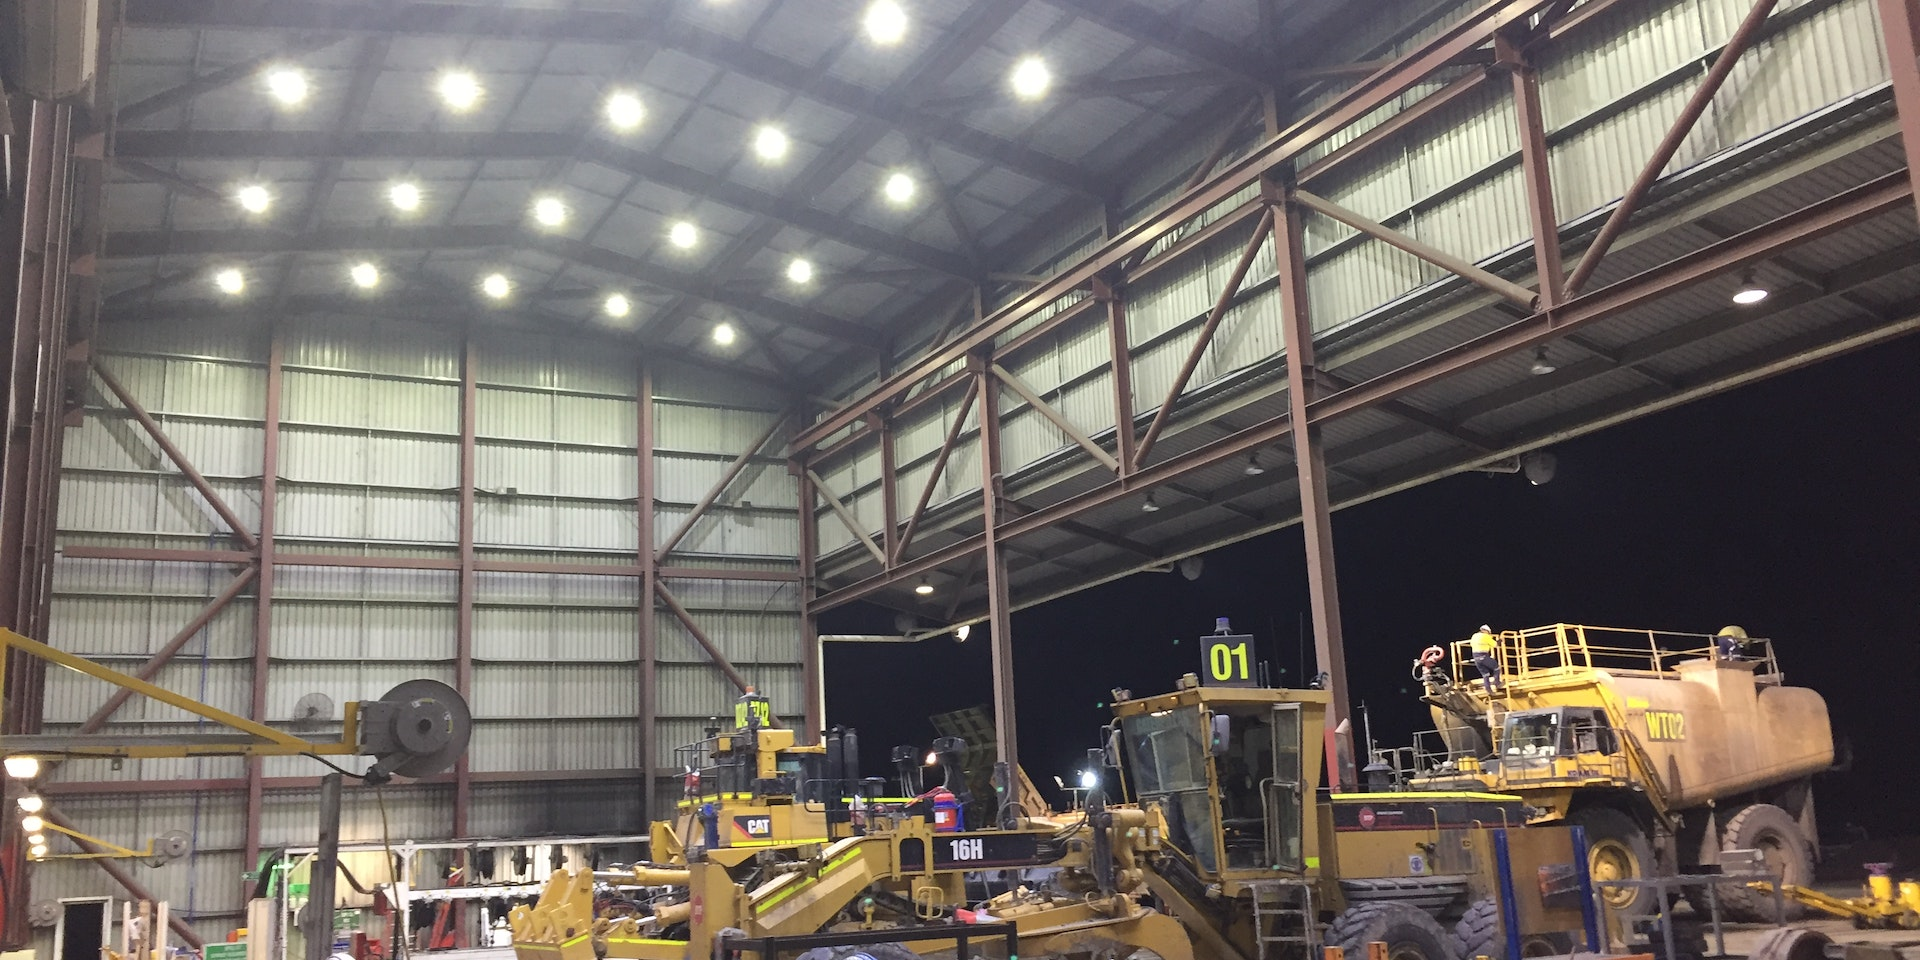 ExTNR LED Conveyor/Area light in application, installed in an industrial tunnel